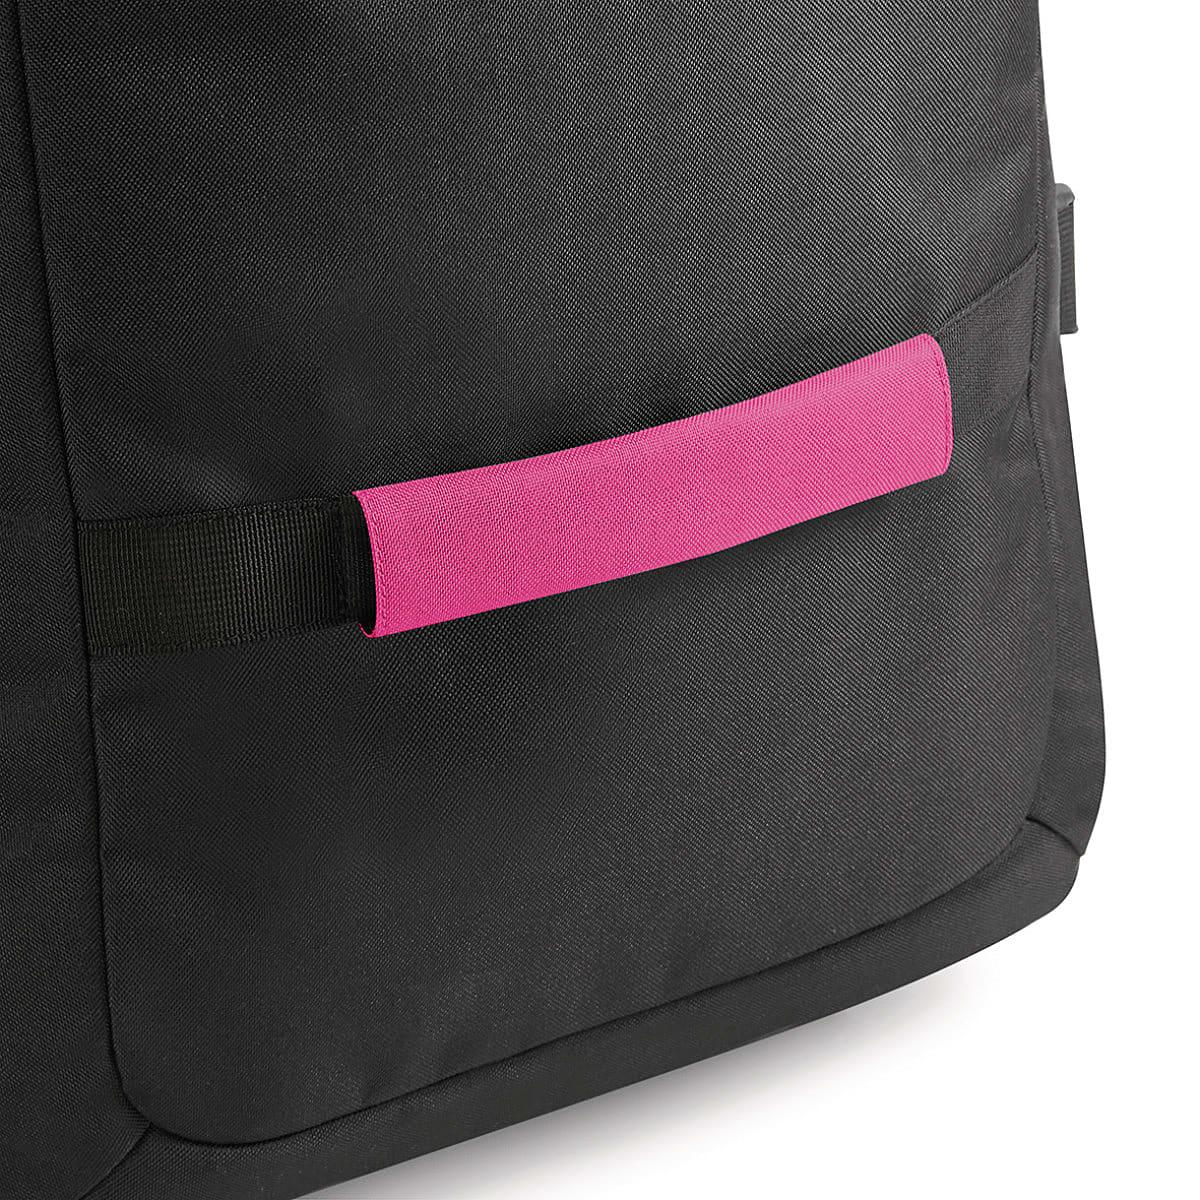 Bagbase Escape Handle Wrap in Fuchsia (Product Code: BG485)